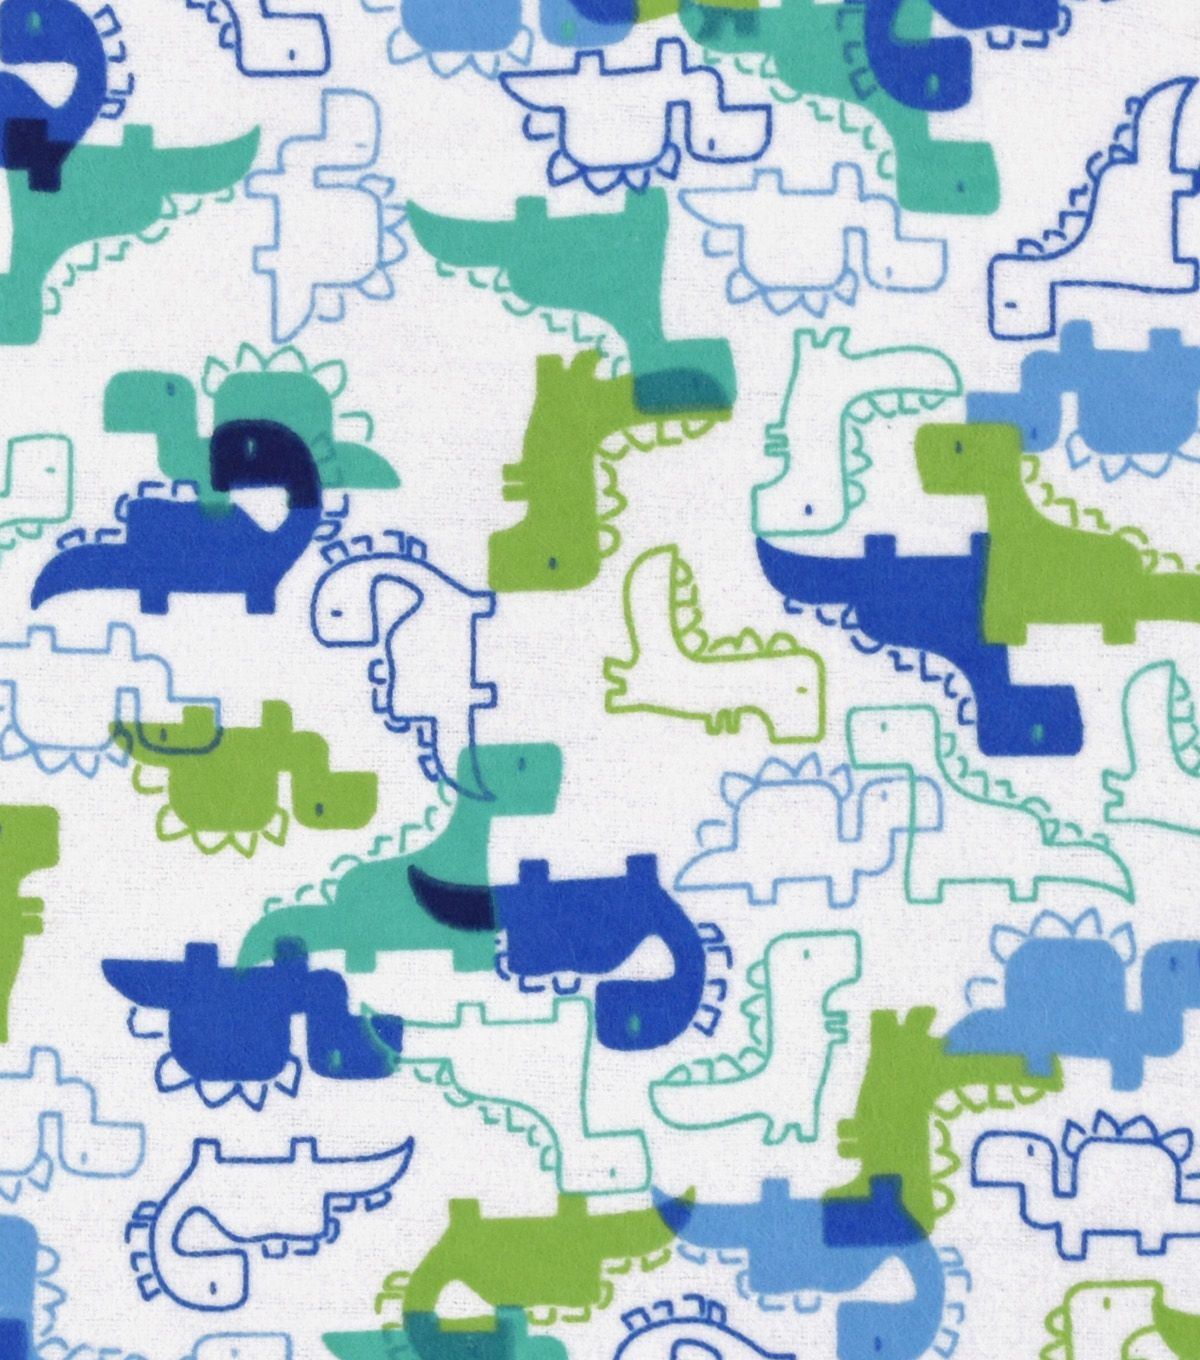 Snuggle flannel fabric 42 blue green dinosaurs products snuggle flannel fabric 42 blue green dinosaurs gumiabroncs Image collections